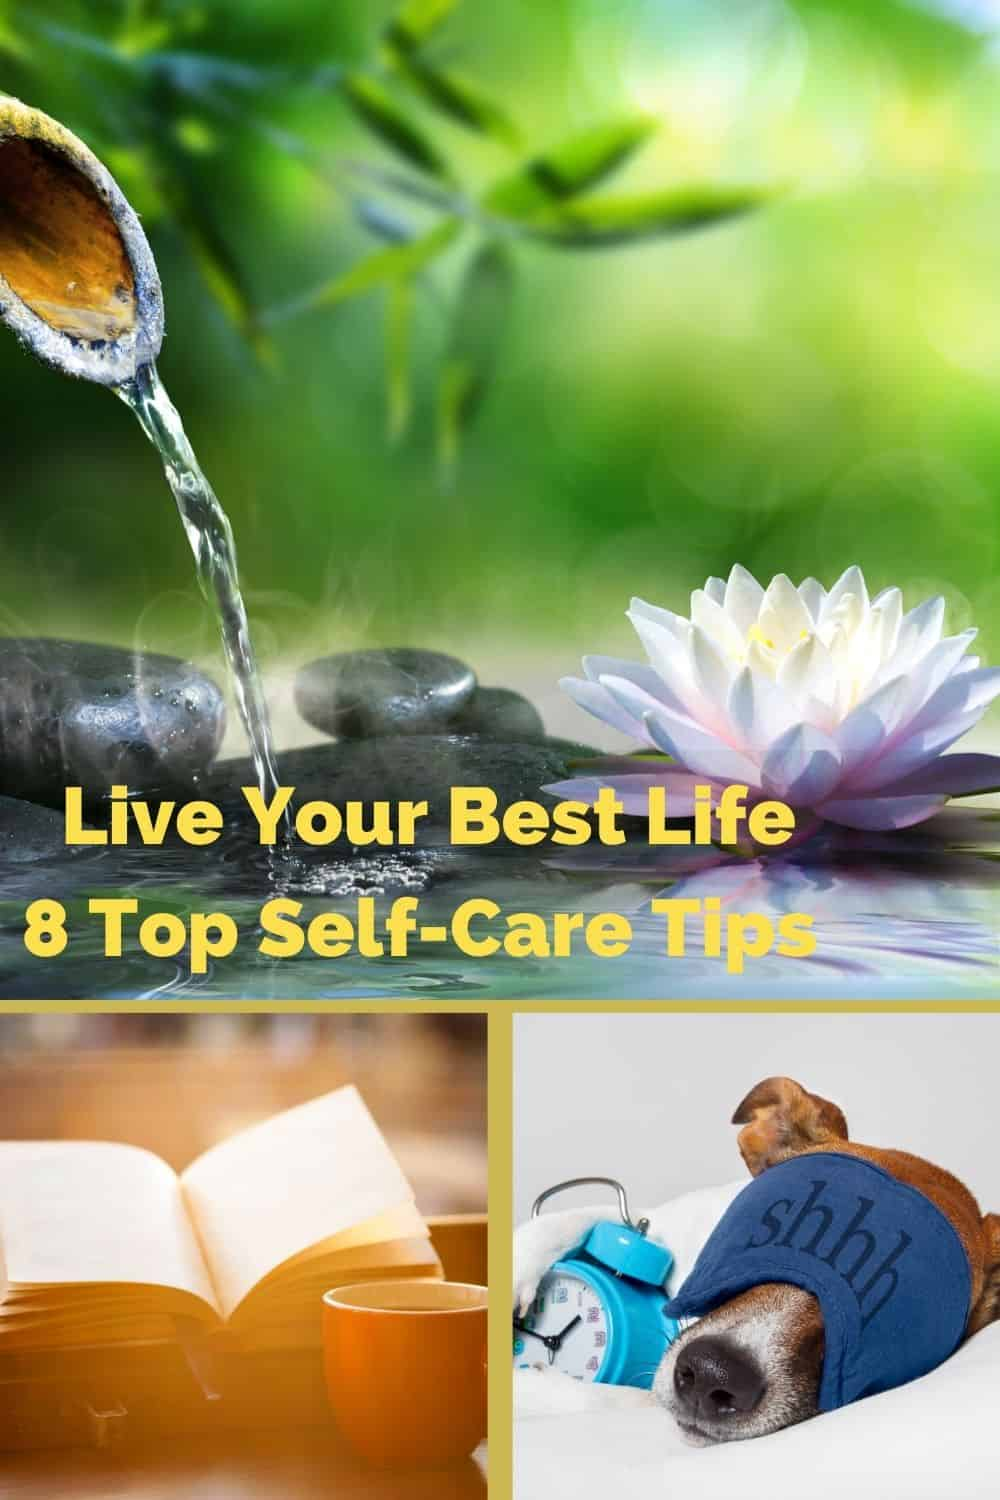 It may seem impossible to look and feel your best every day, but it is not out of your reach. You may even be so used to not functioning at 100% that you may not even notice how much your life could be improved. These #selfcare tips will help you live your best life. #covid #takecareofme #selfcaretips